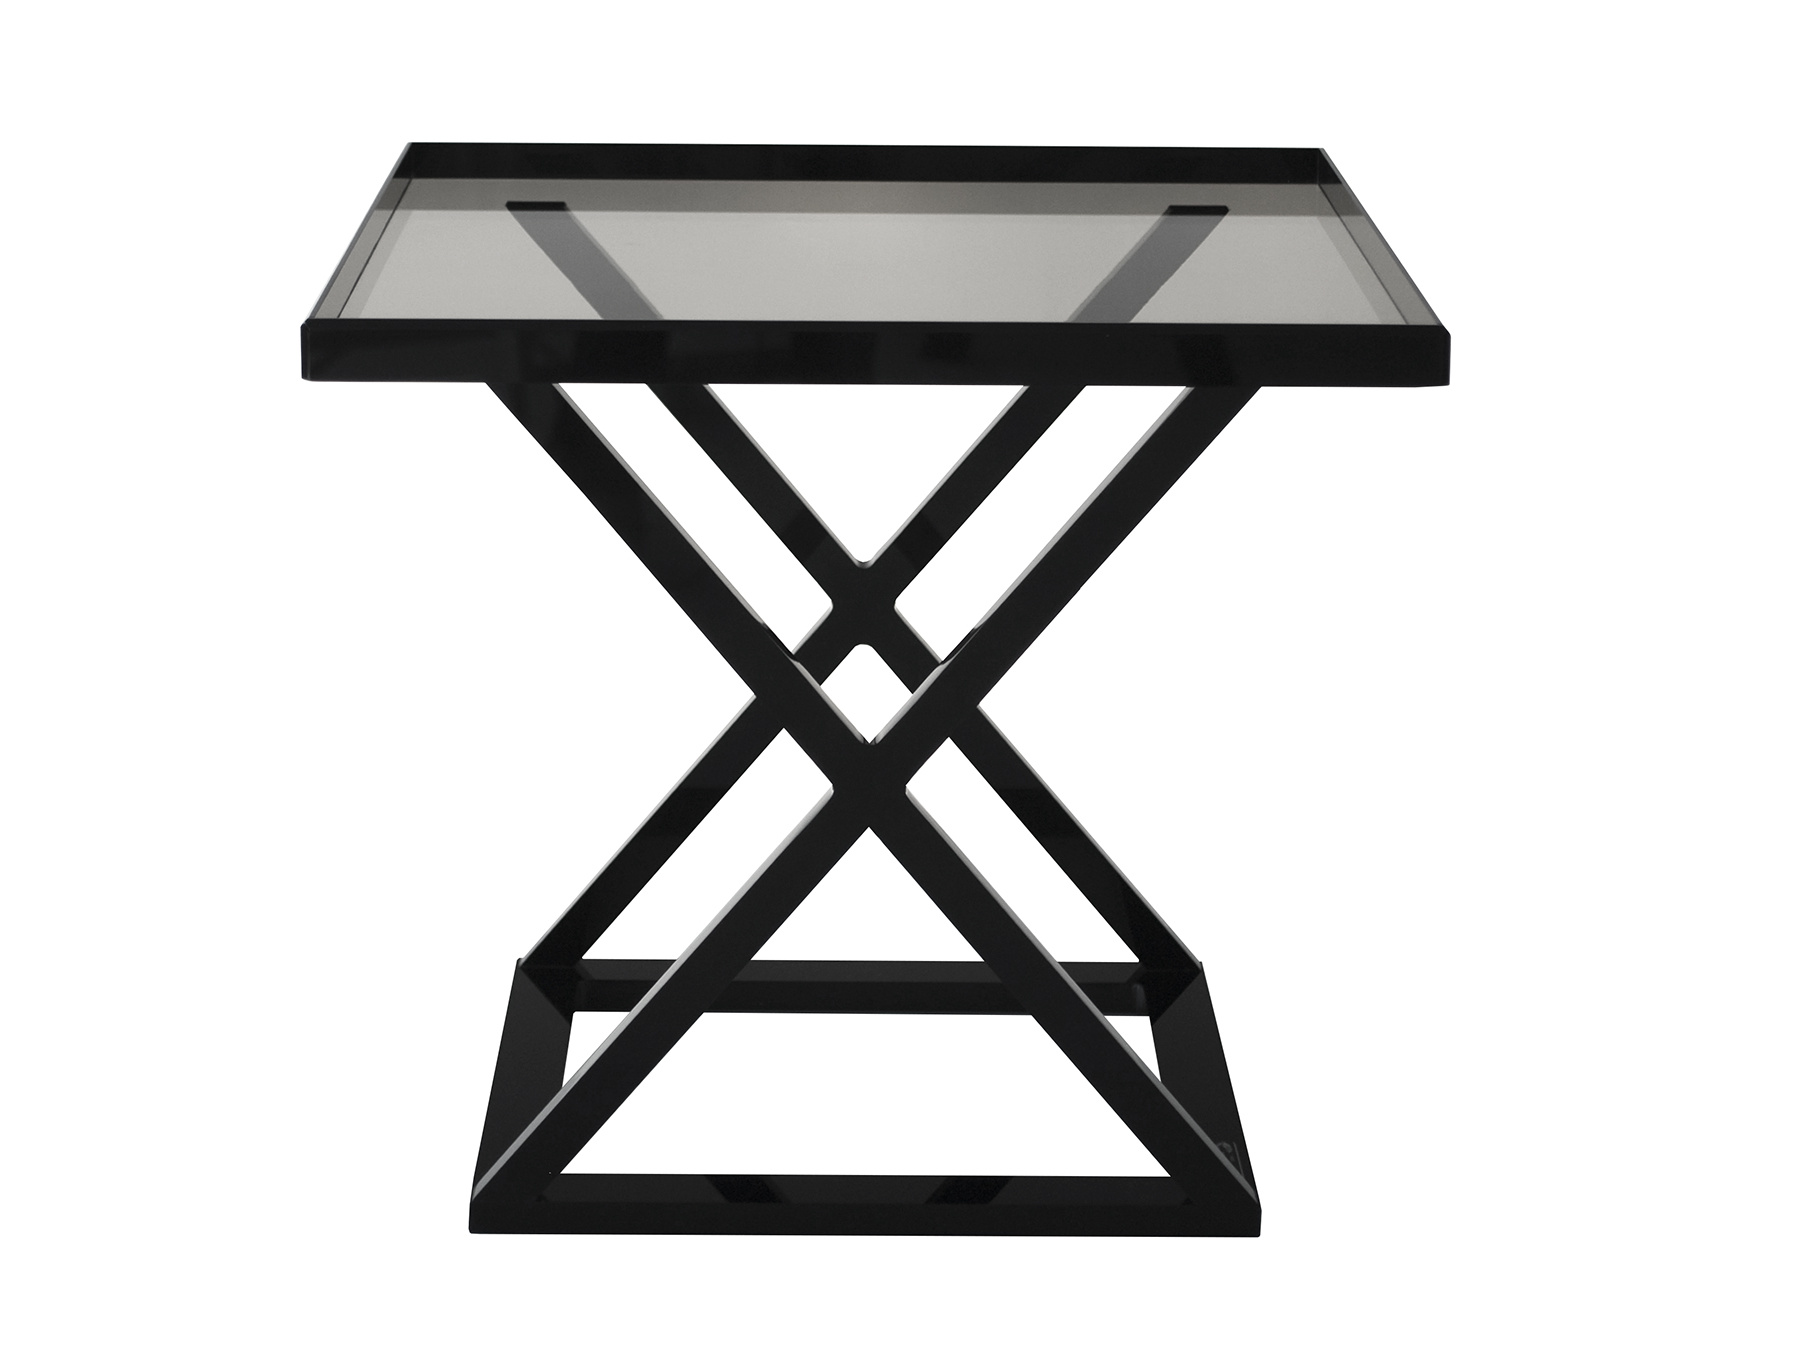 alexandra von furstenberg acrylic accent table original black bayside furnishings cabinet extra large round patio cover metal wine racks target kitchen cart bar height outdoor oak